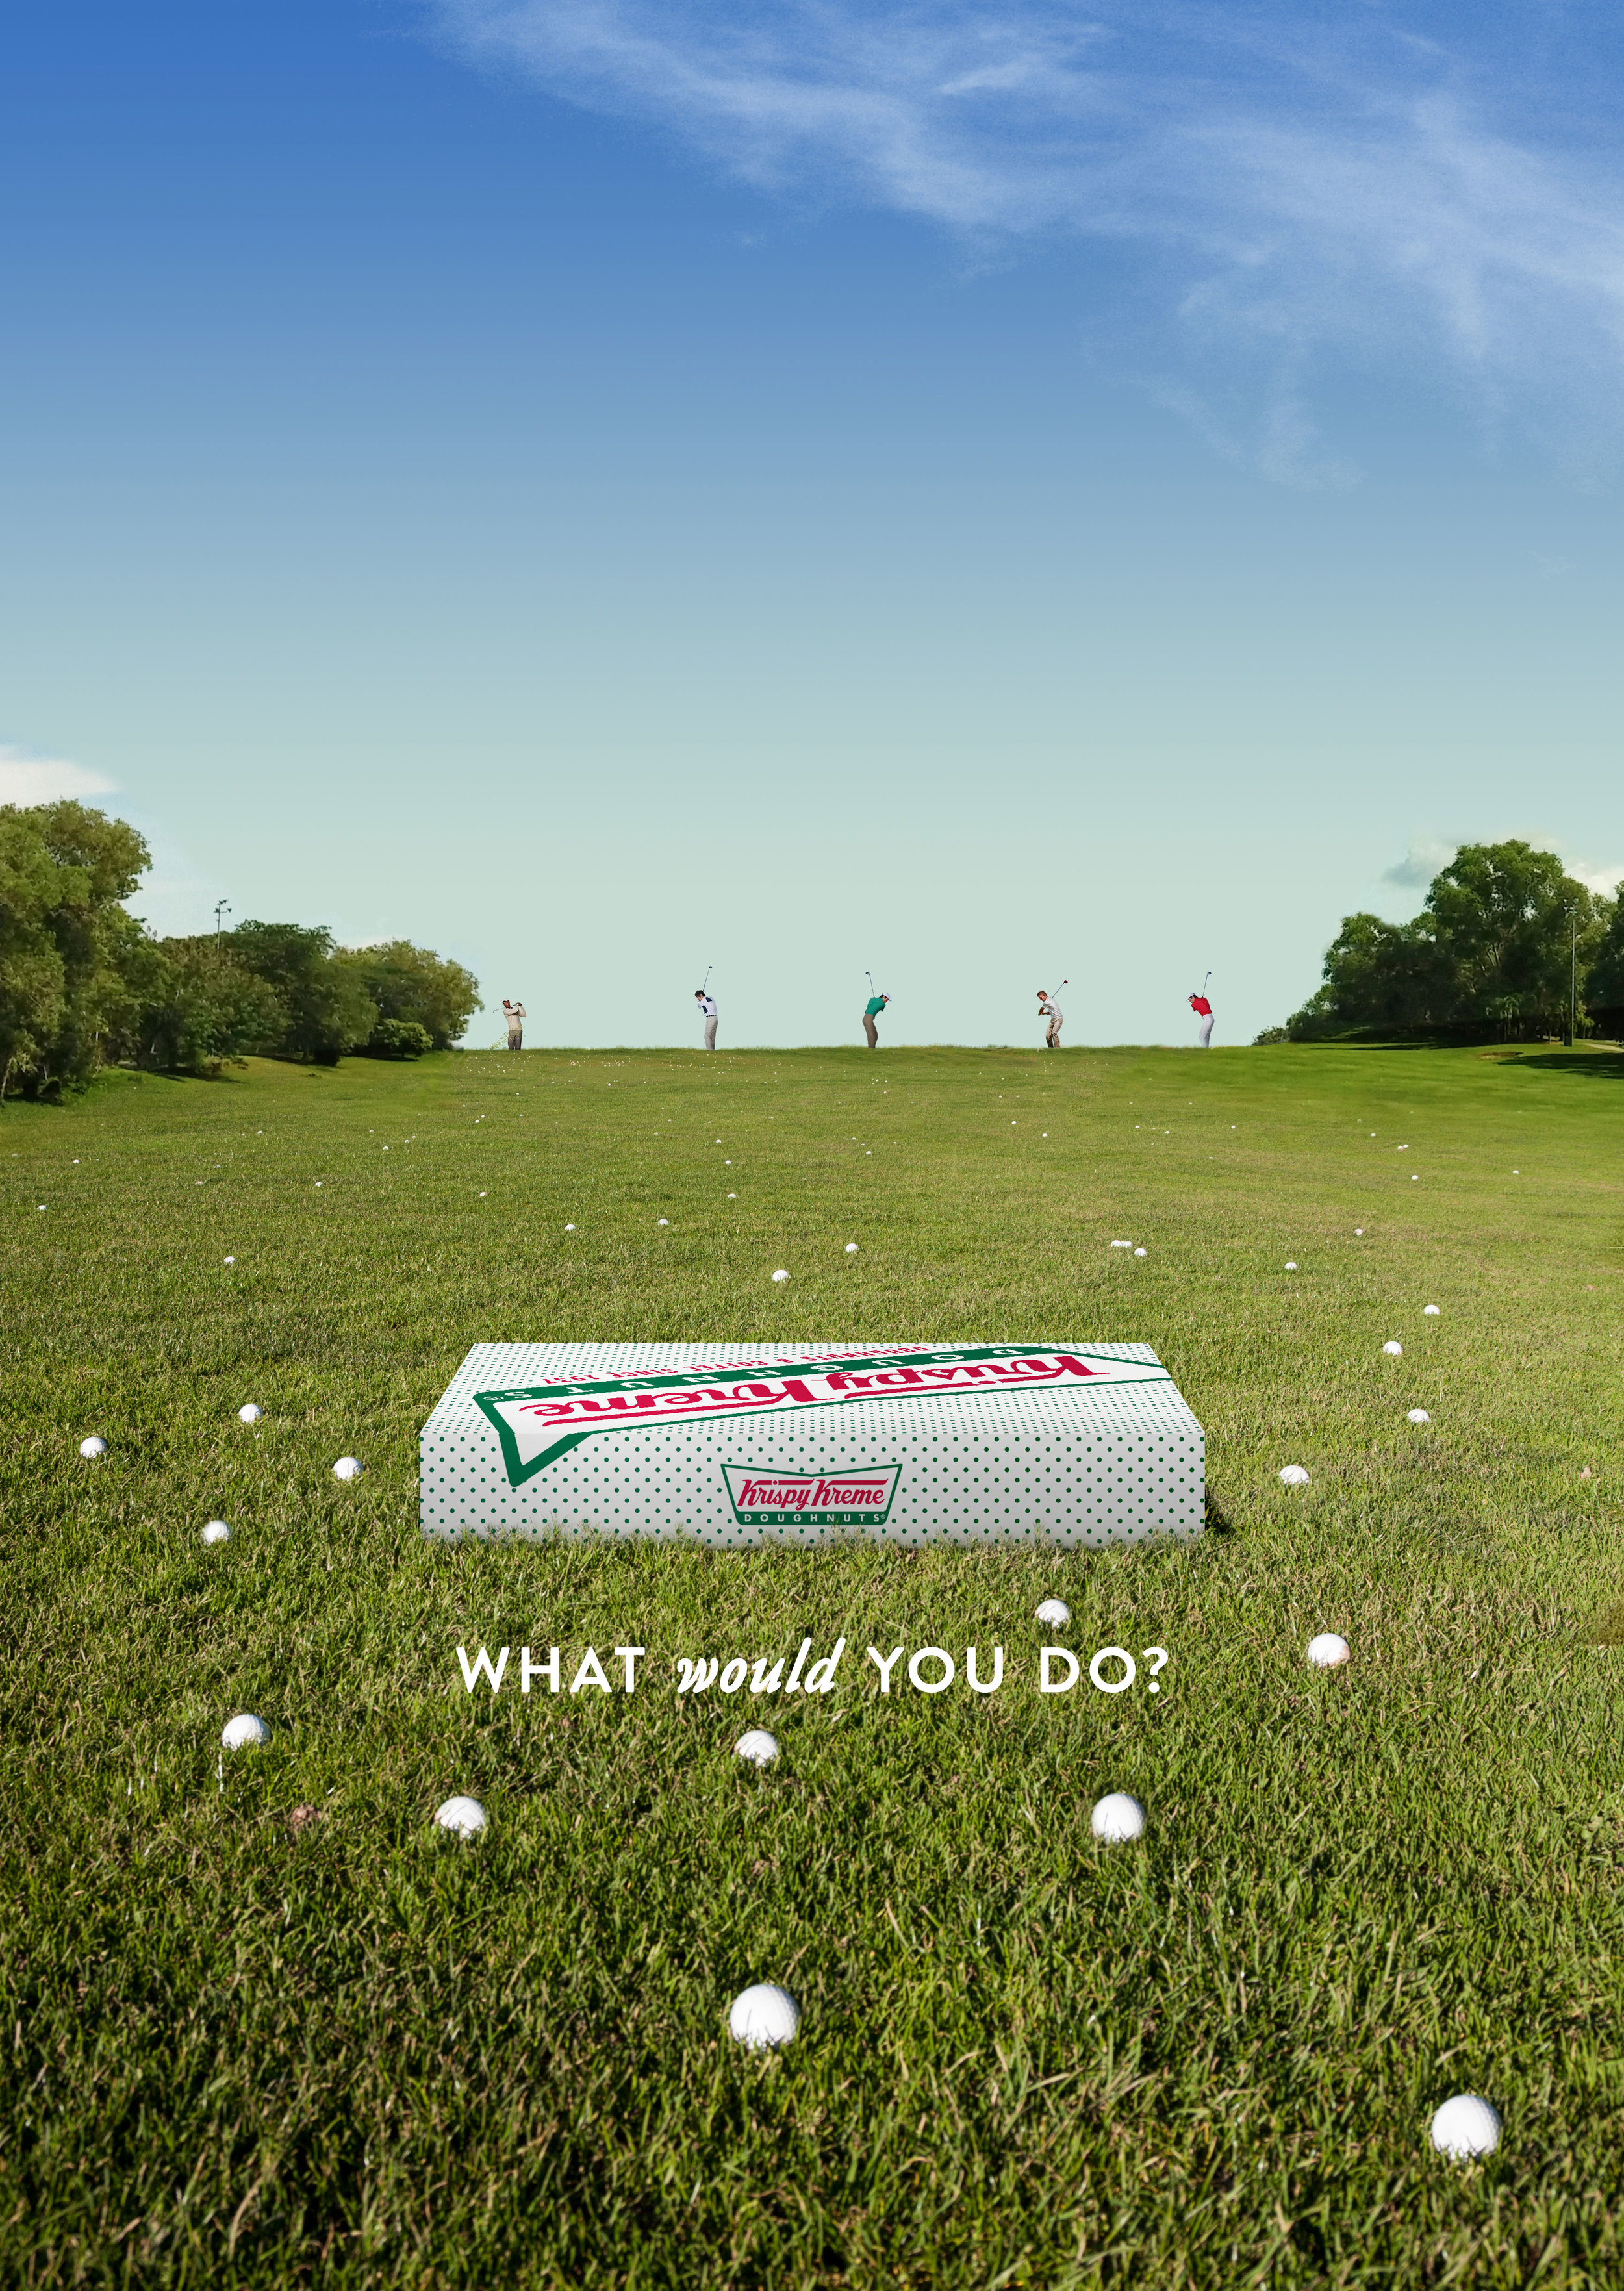 Would you risk getting hit by flying golf balls on a driving range for a doughnut?